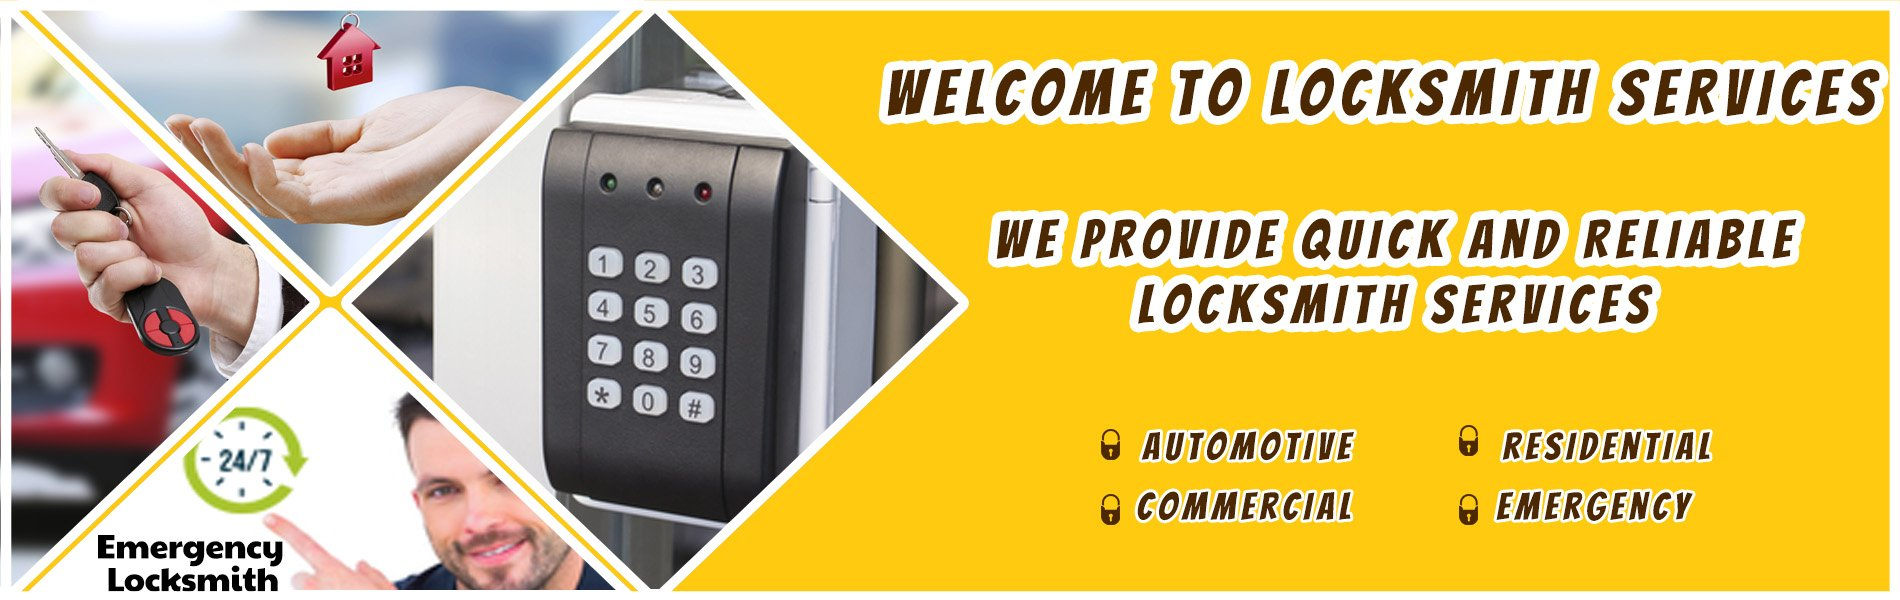 Expert Locksmith Store San Francisco, CA 415-968-3943